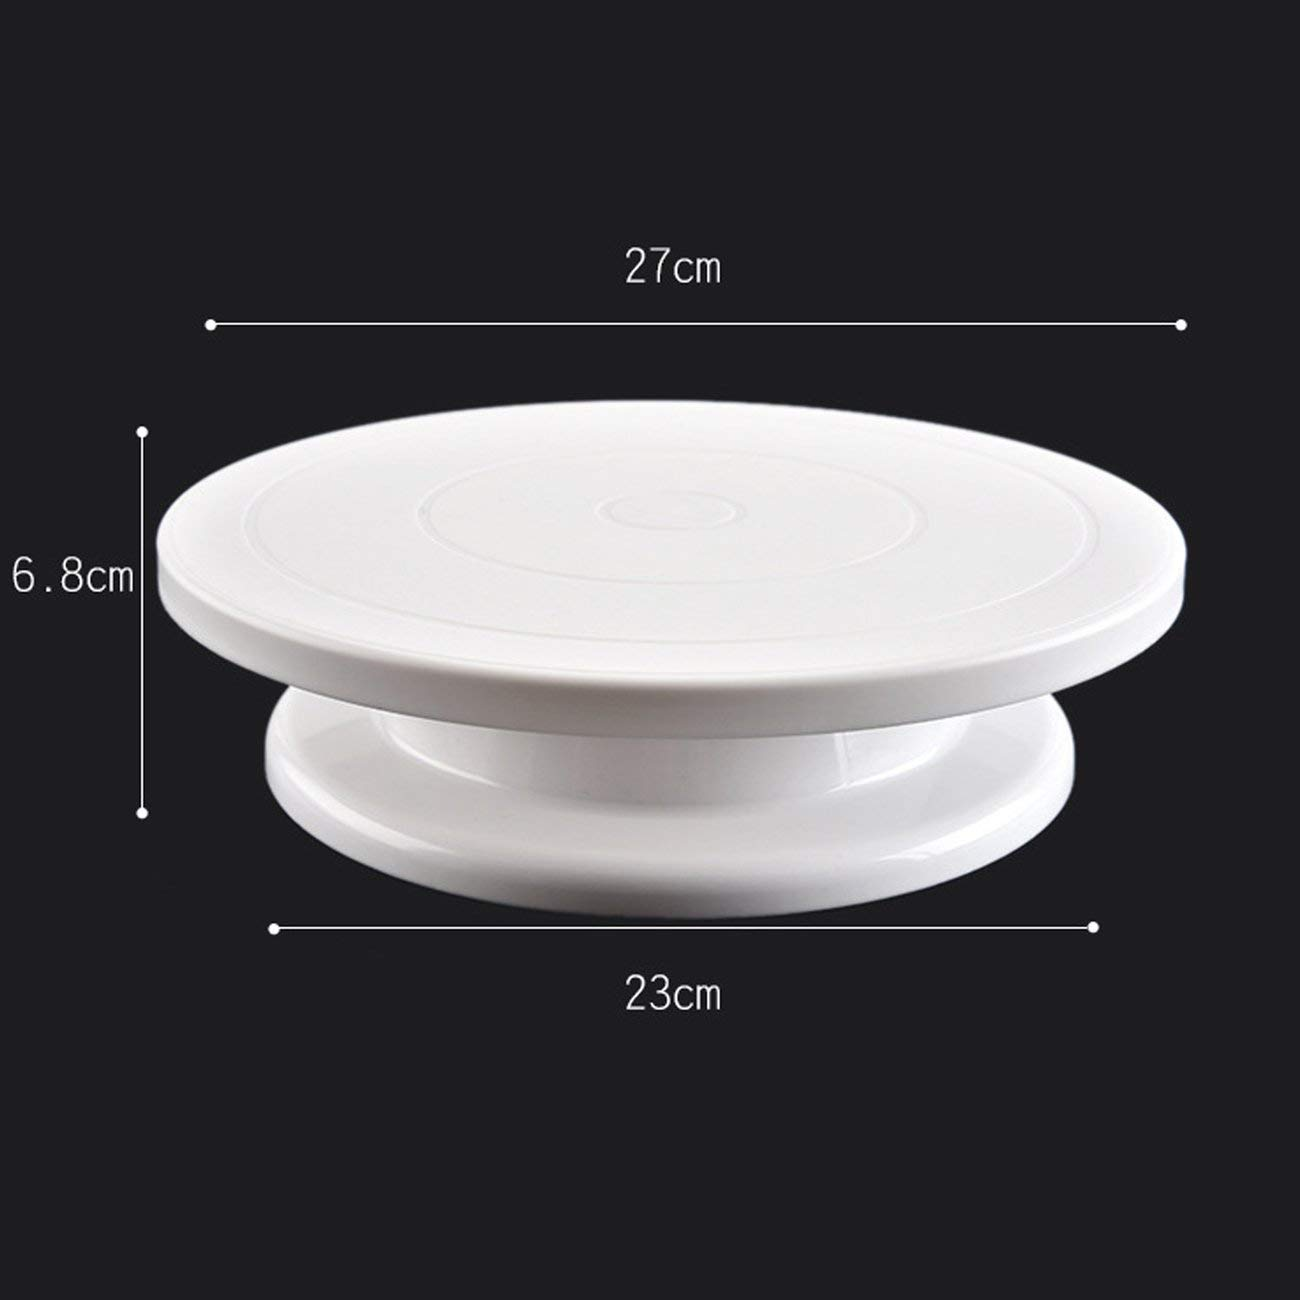 Cake Decorating Turntable Baking Cake Turntable Plastic Rotating Round Plastic Rotary Table Turntable Cake Plate